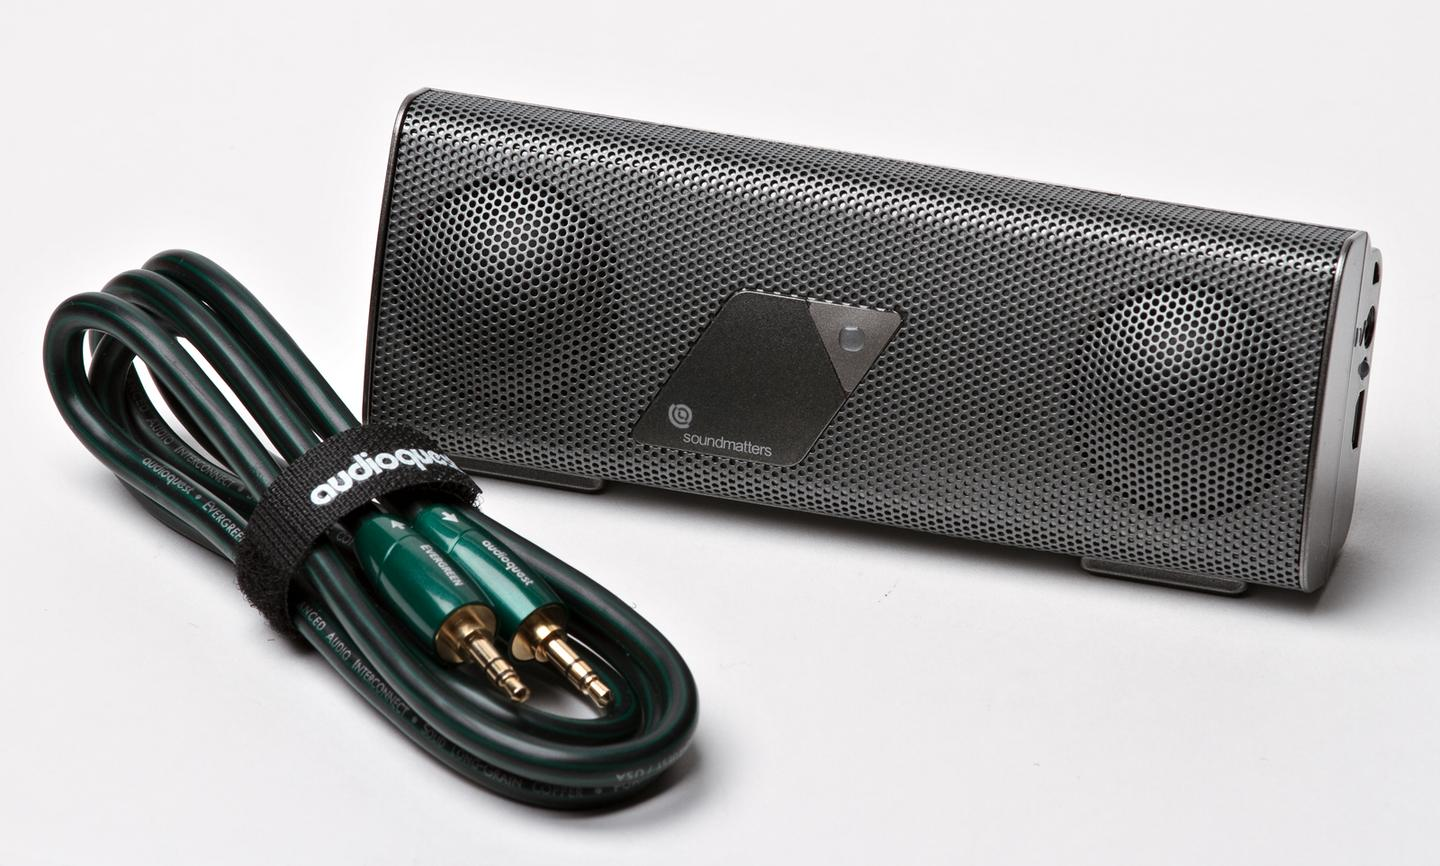 Soundmatters' foxLv2 PLATINUM speaker comes with an Evergreen audio cable from Audioquest